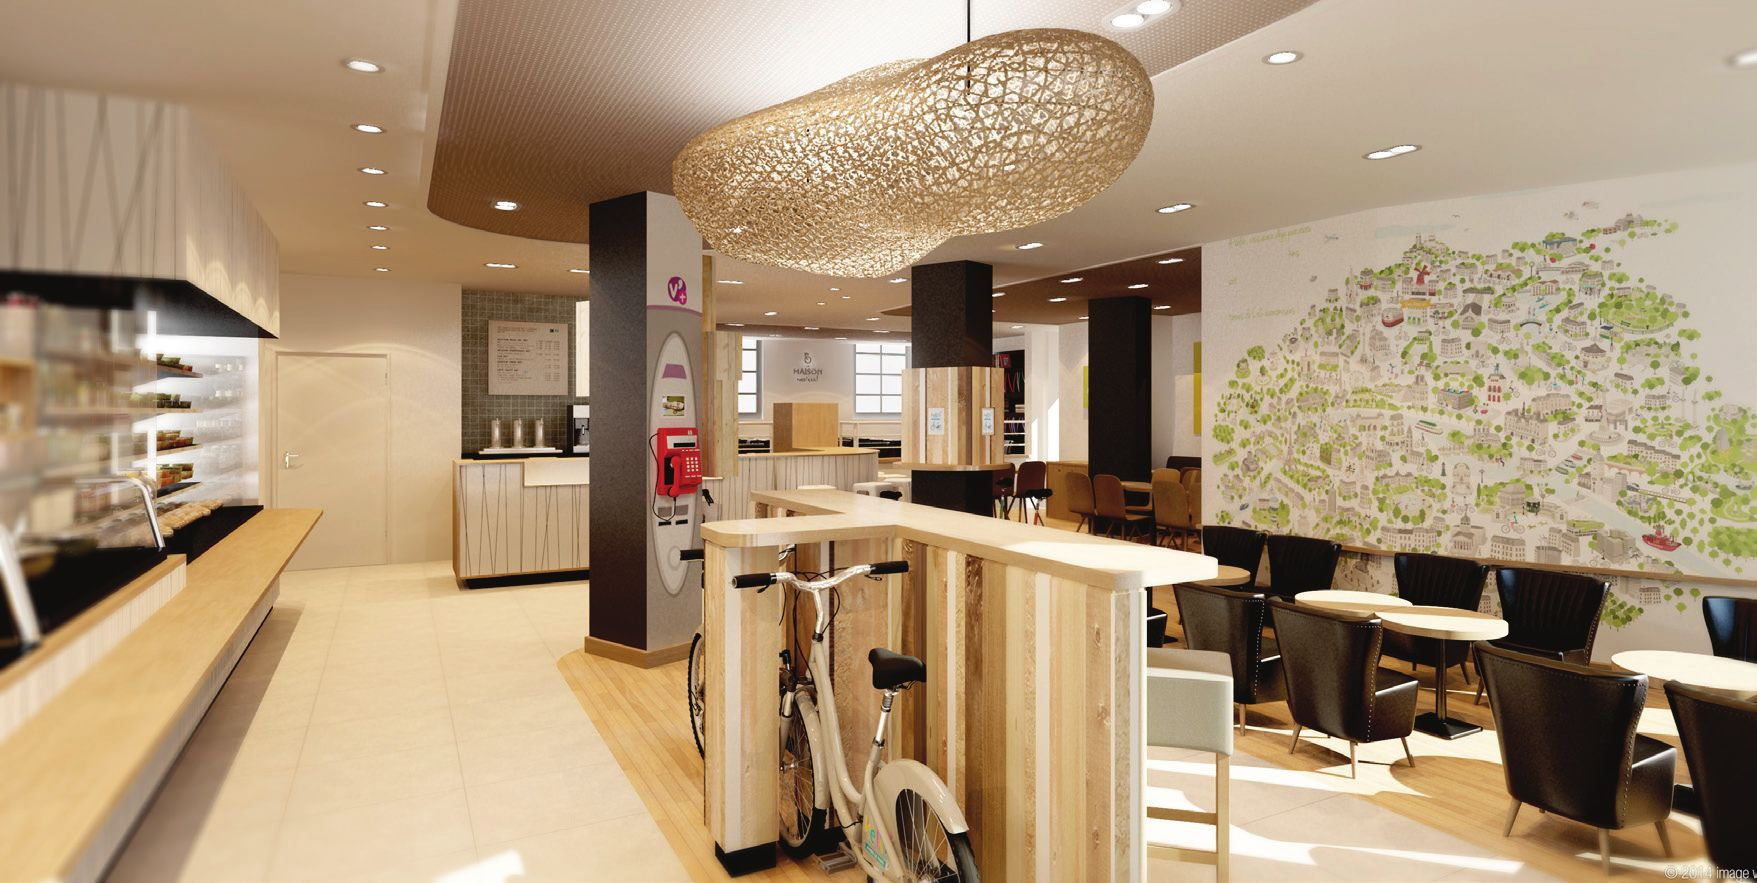 la maison velib exki un coffee bike paris mademoiselle bon plan. Black Bedroom Furniture Sets. Home Design Ideas